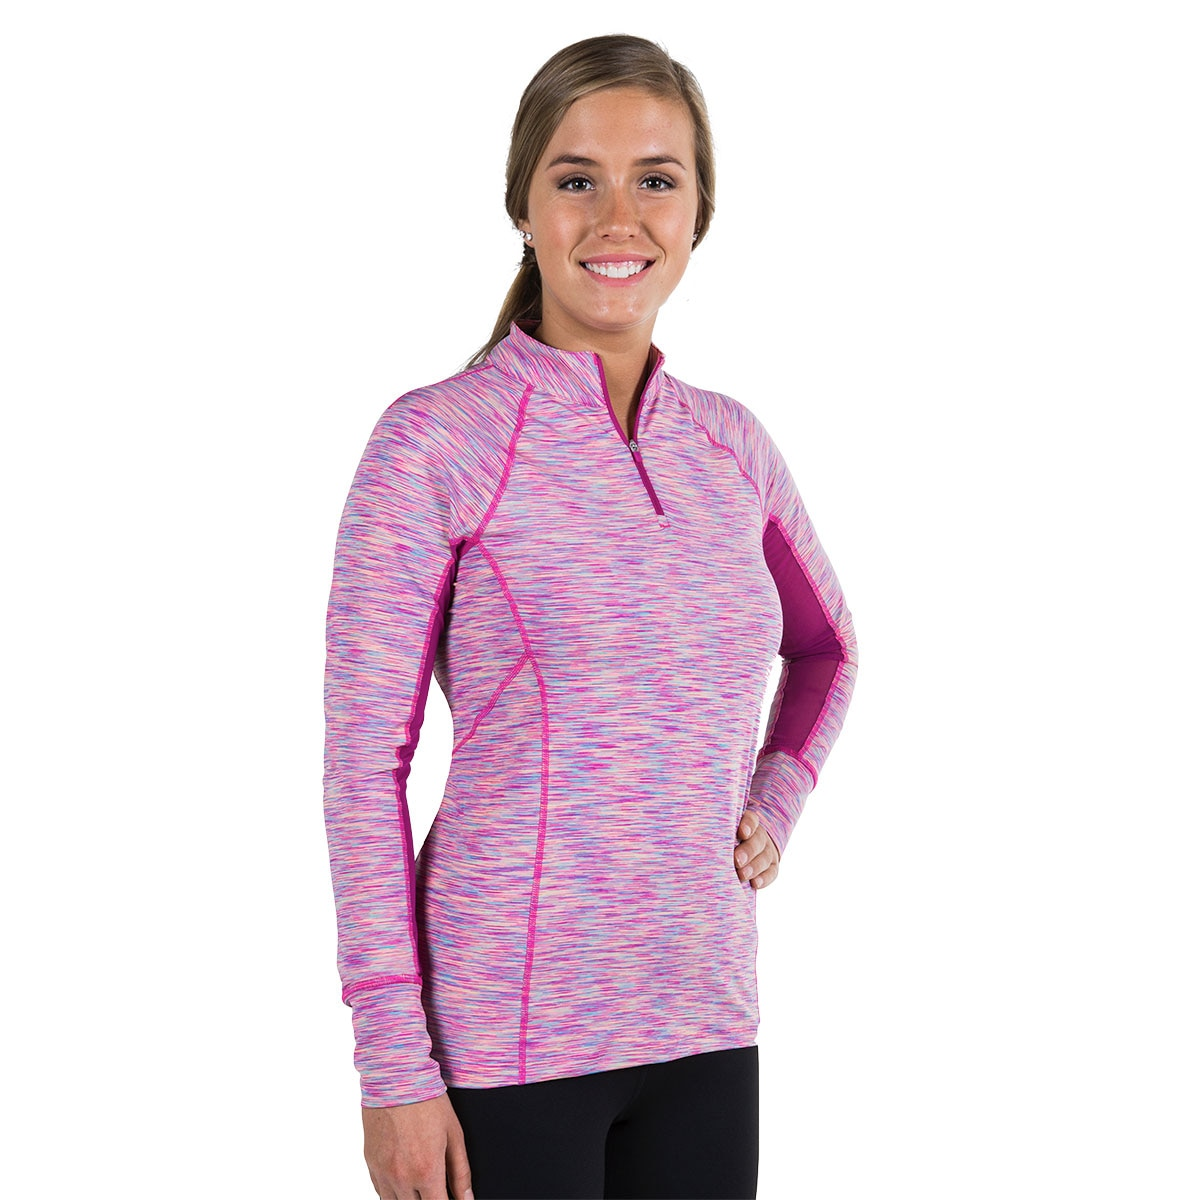 Noble Outfitters Olivia Performance Sun Shirt Made Exclusively for SmartPak